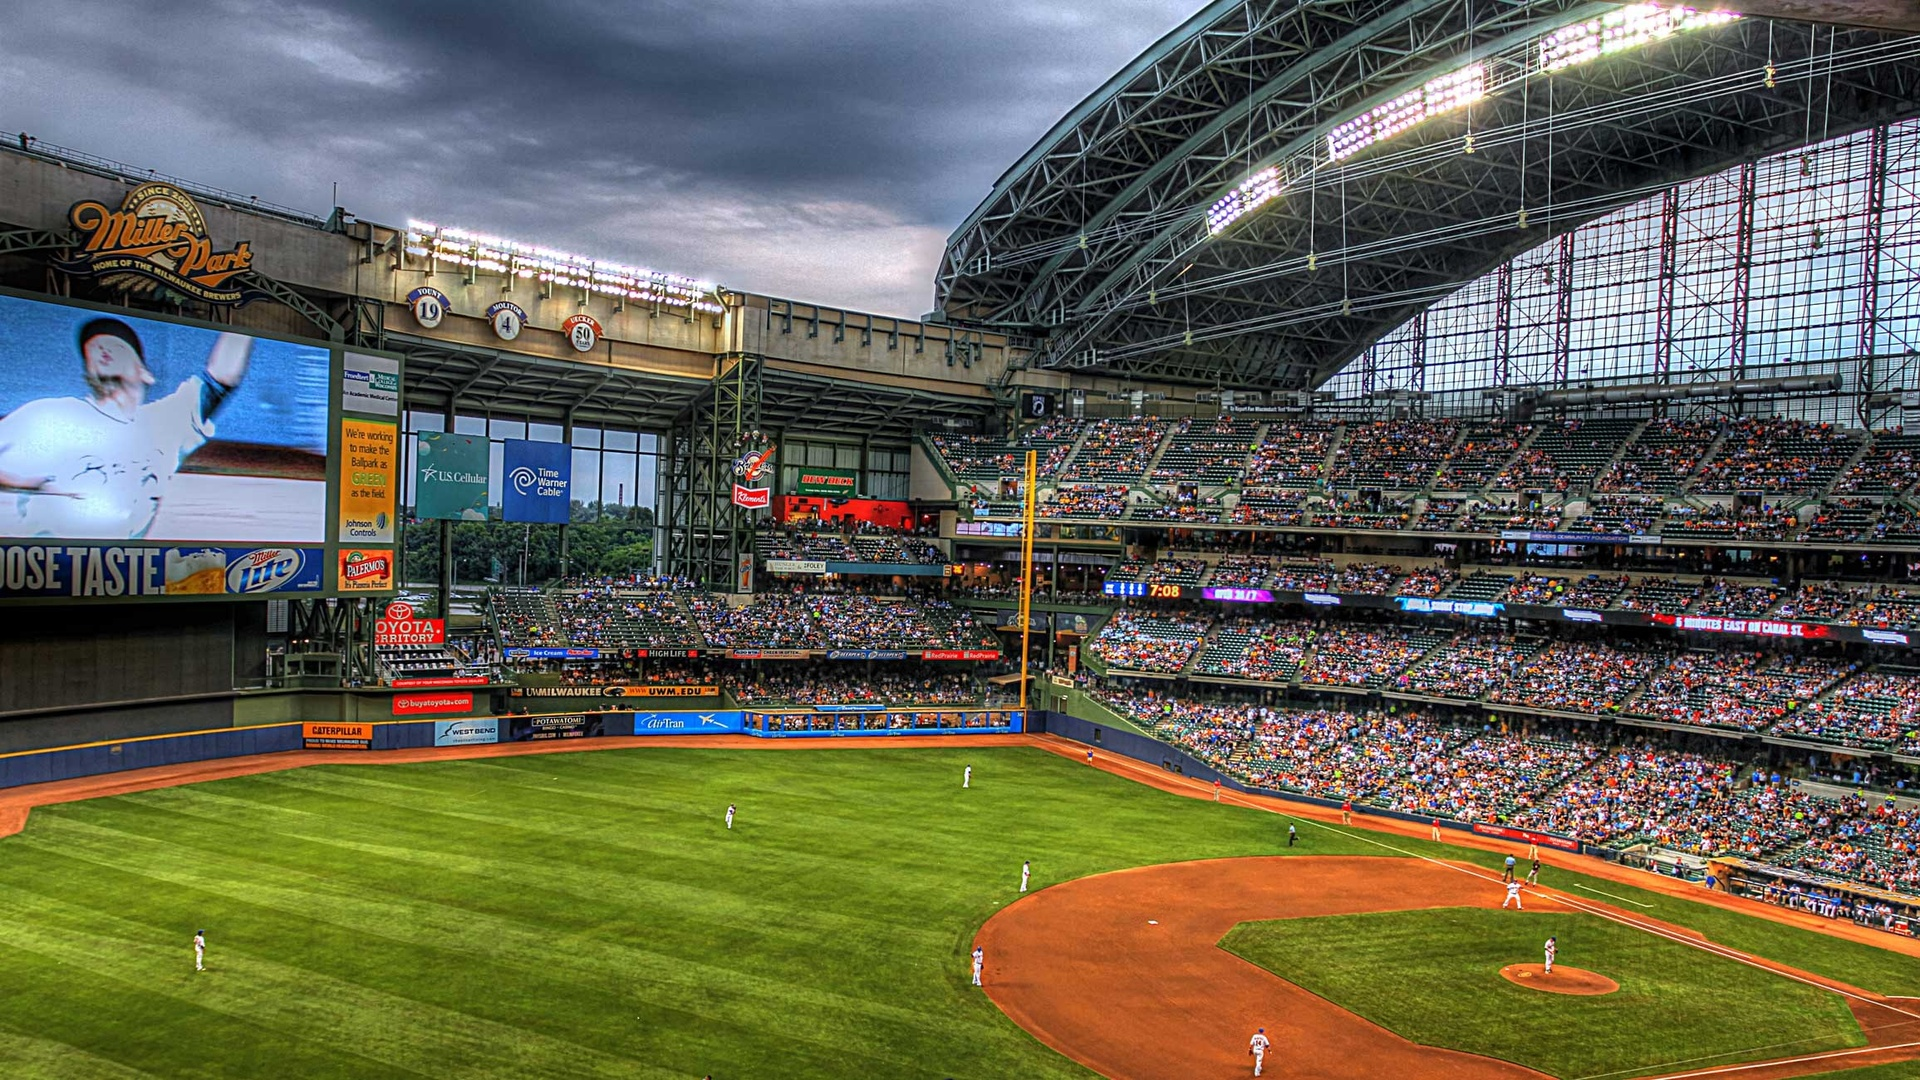 Download Baseball Stadium Wallpaper 1920x1080